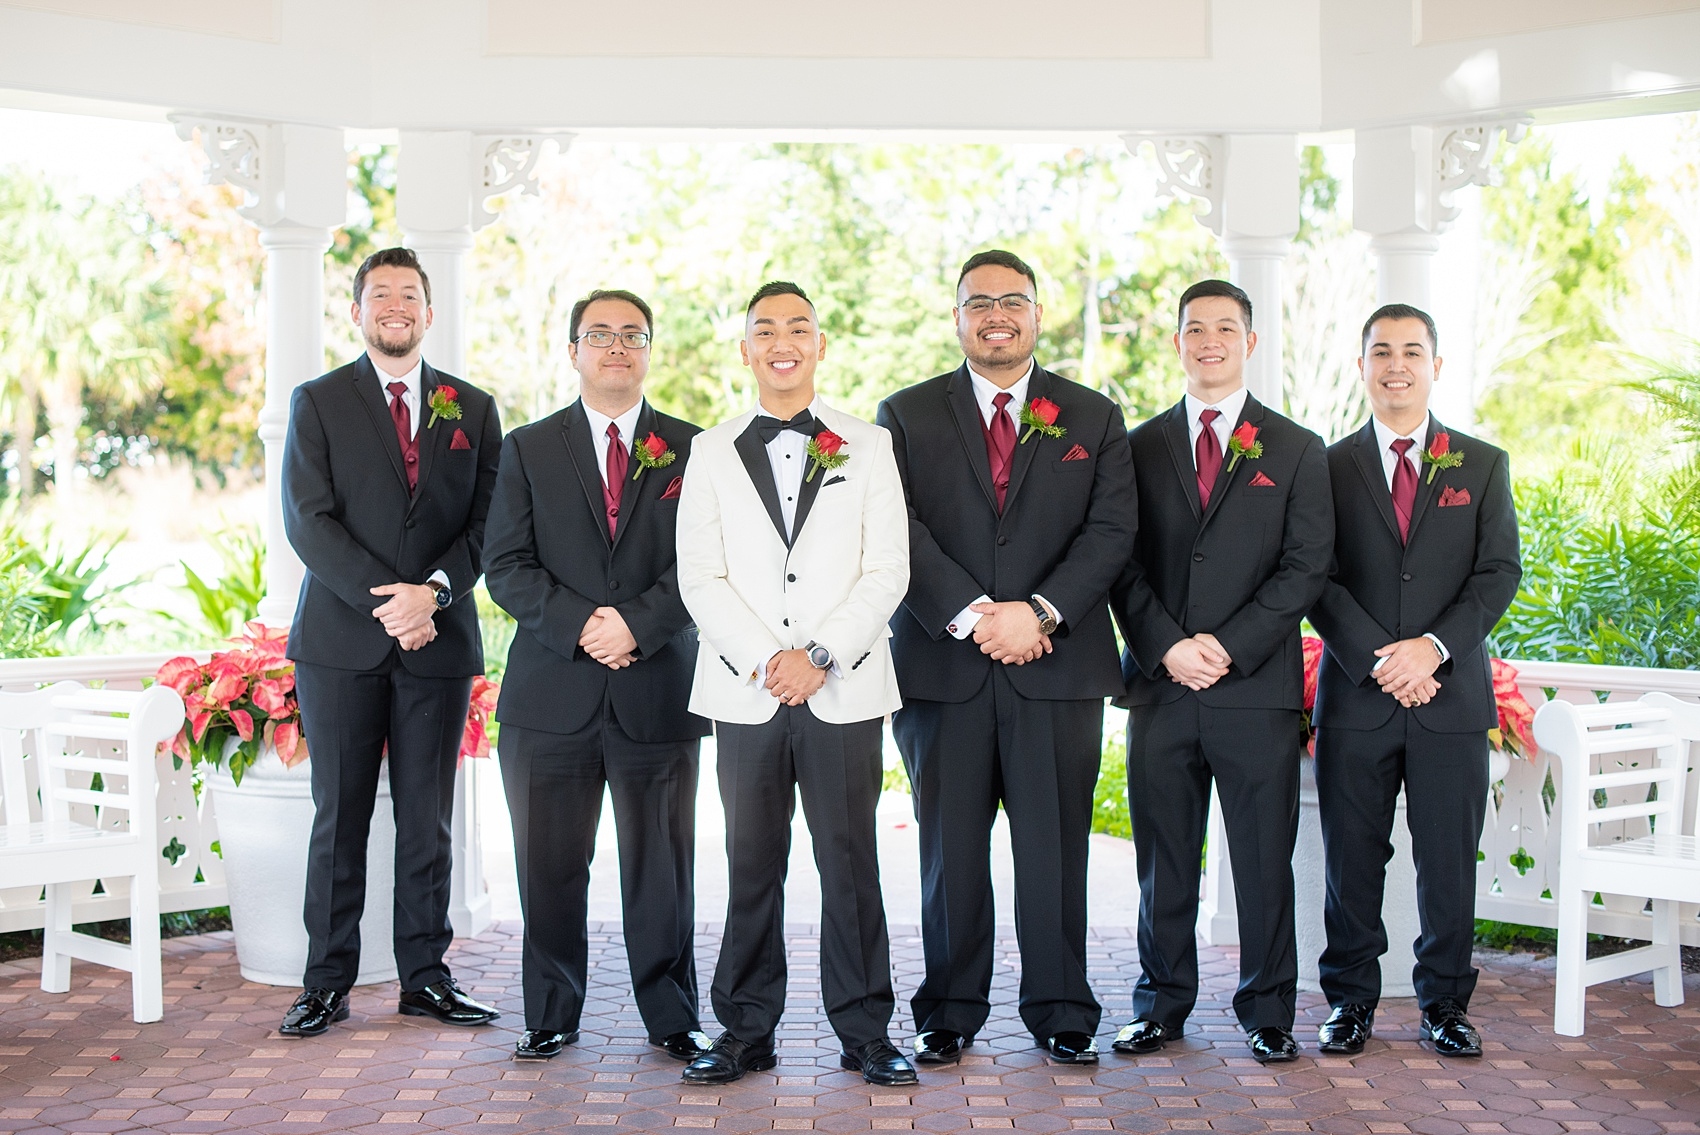 Photographs of a Walt Disney World bridal party by Mikkel Paige Photography. The groom wore a white tuxedo to his wedding venues of the Grand Floridian, Wedding Pavilion and The Contemporary Resort. They all wore rose boutonnieres and marvel comic cufflinks, a small detail that was an awesome way to incorporate a fun idea. #disneywedding #disneybride #waltdisneyworld #DisneyWorldWedding #BeautyandtheBeast #redrosewedding